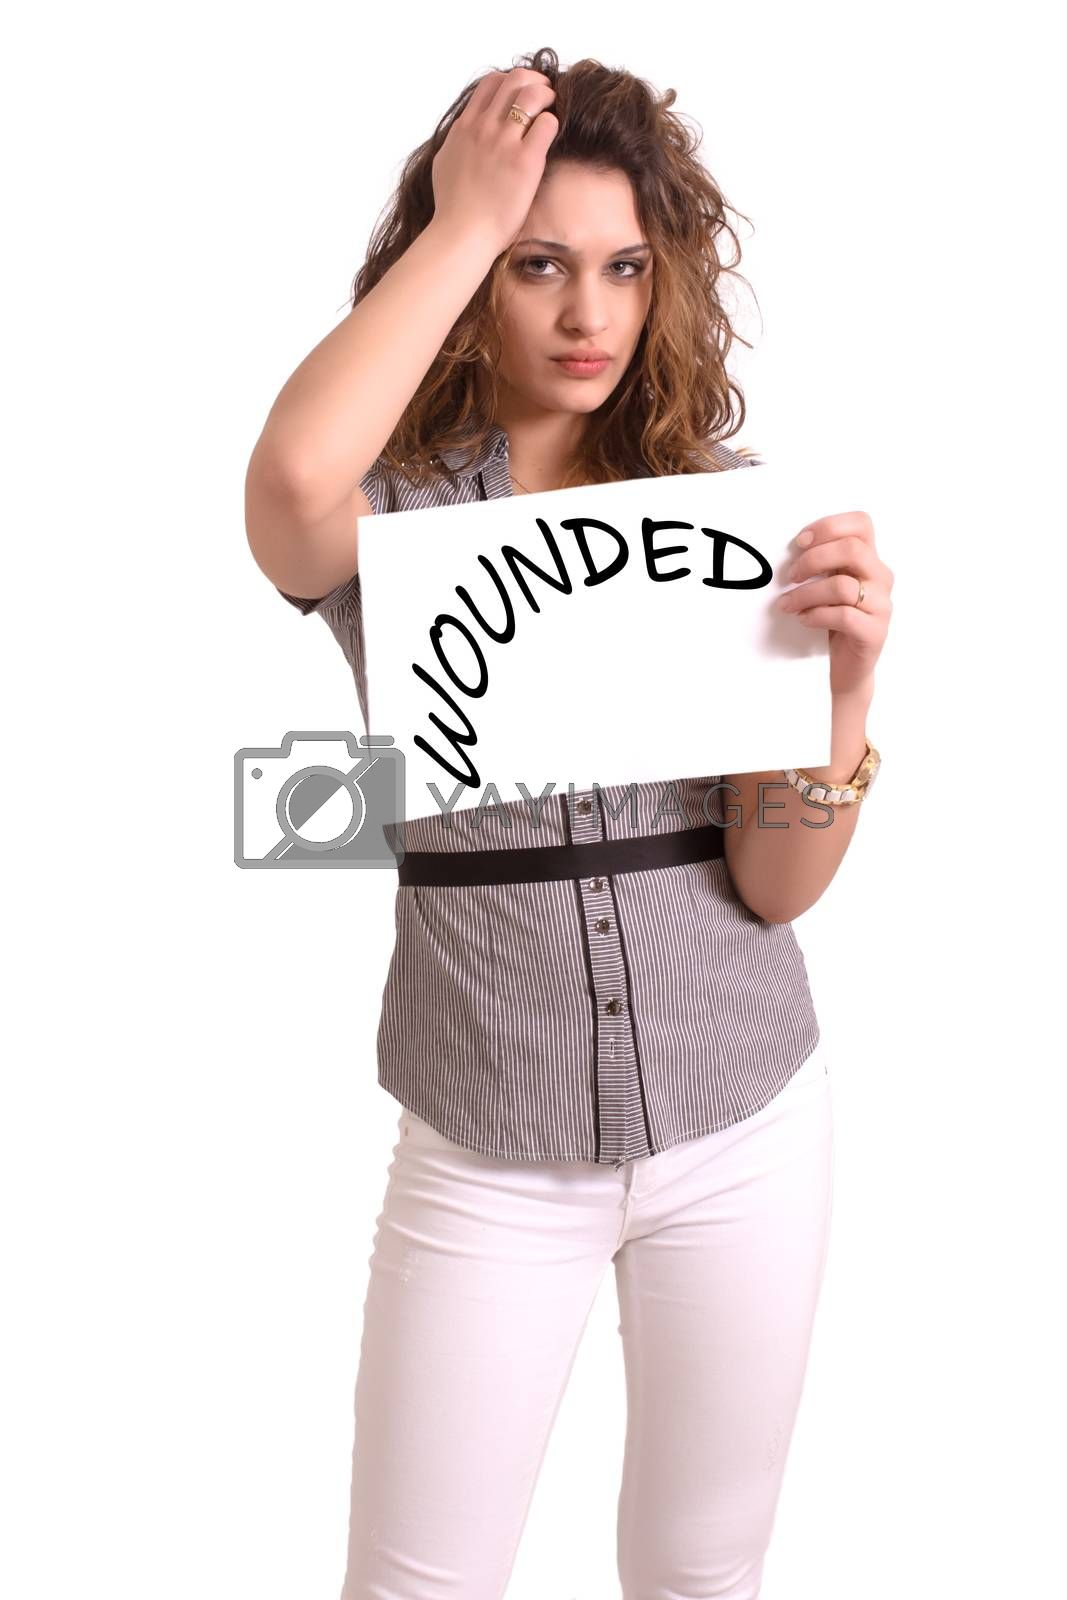 Royalty free image of uncomfortable woman holding paper with Wounded text by vepar5